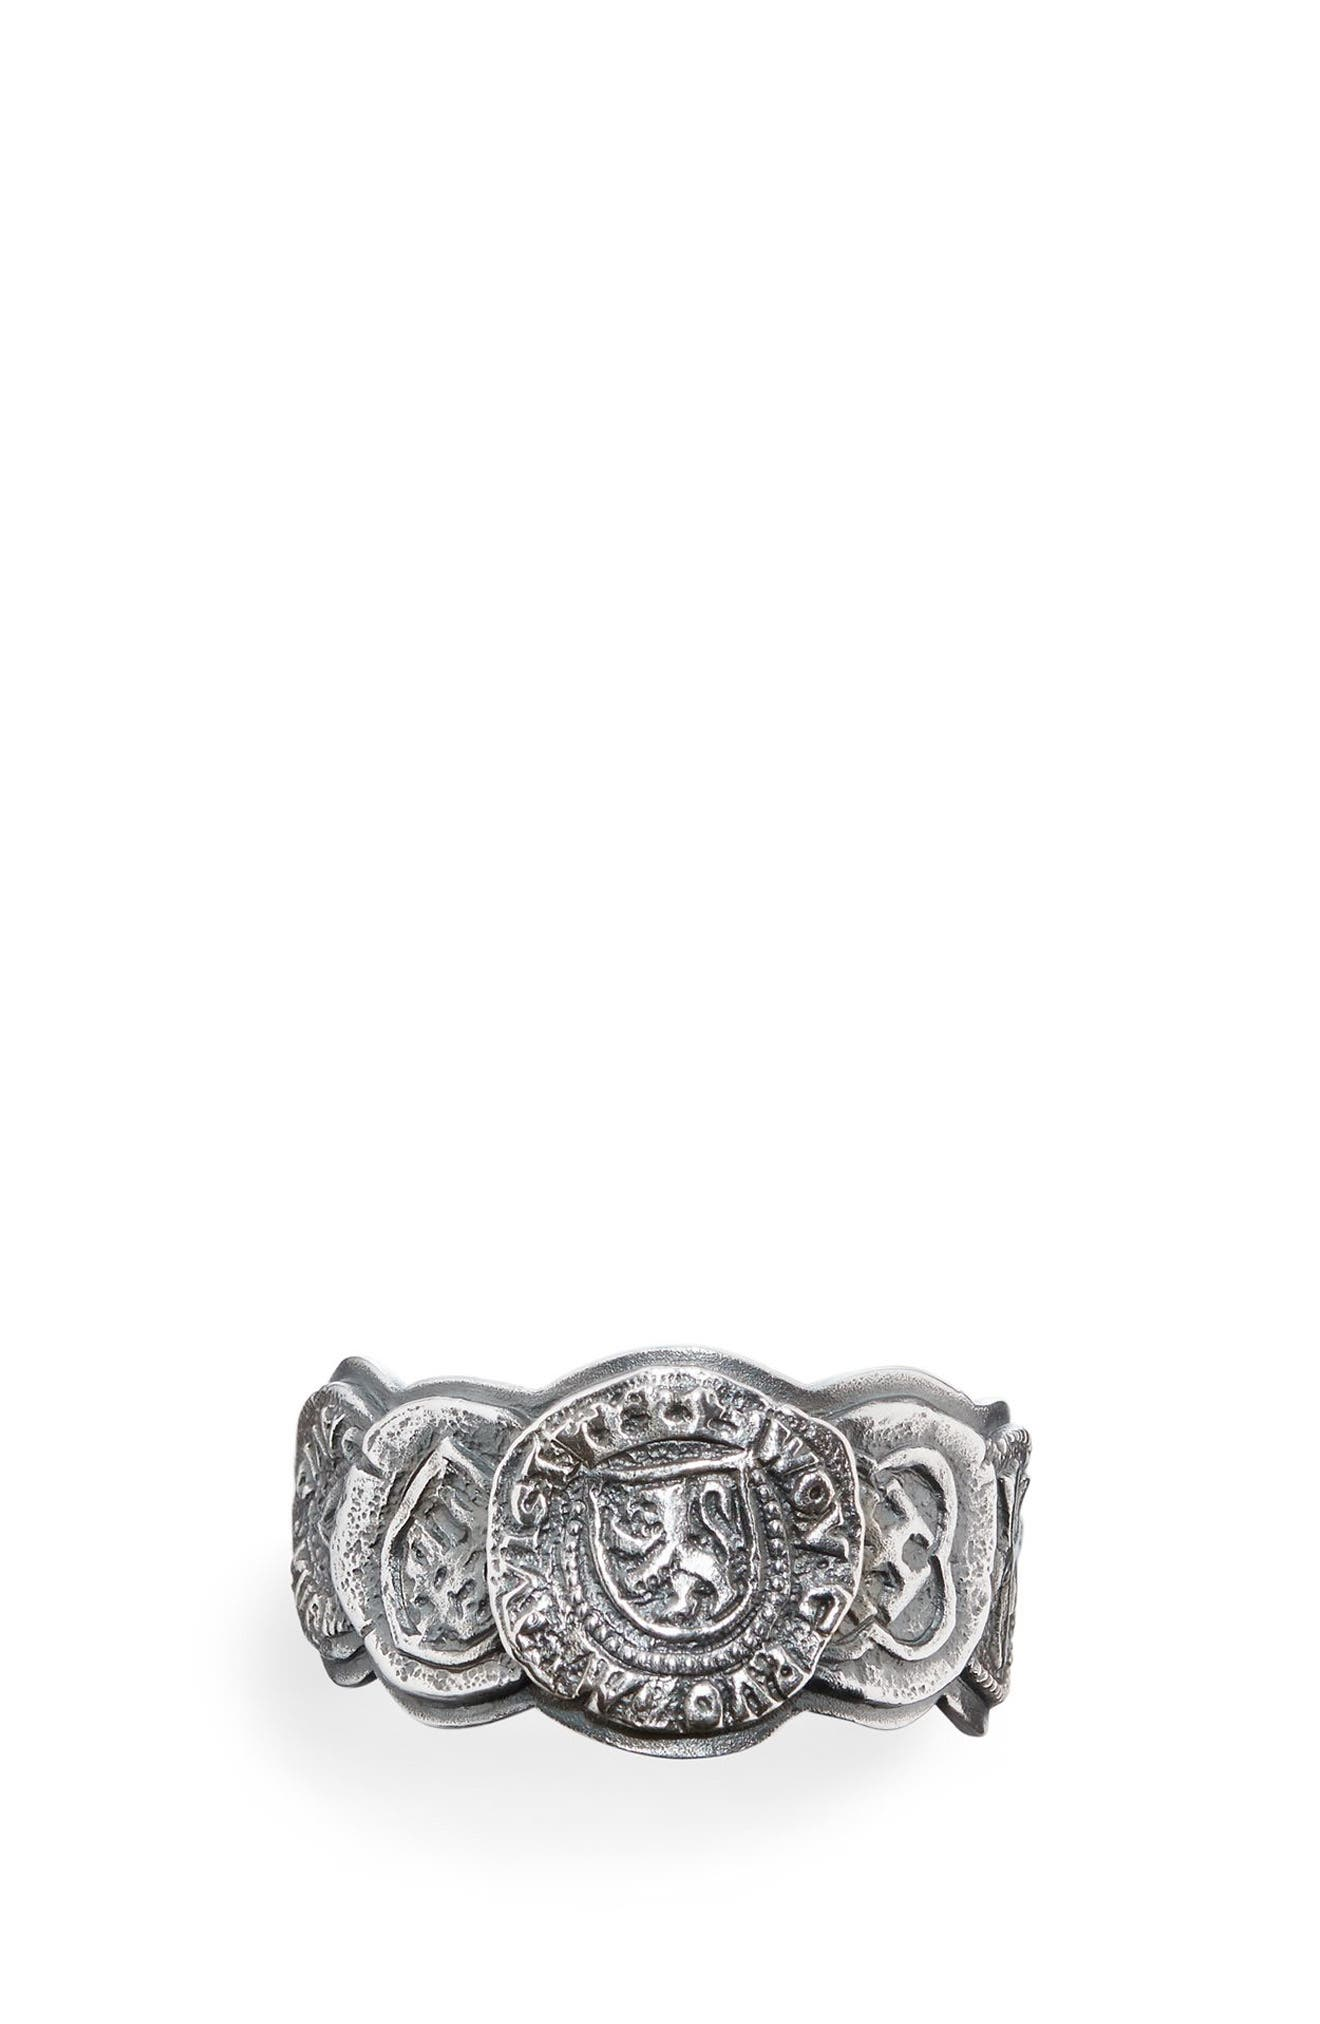 Shipwreck Coin Band Ring, 12mm,                             Alternate thumbnail 3, color,                             Silver